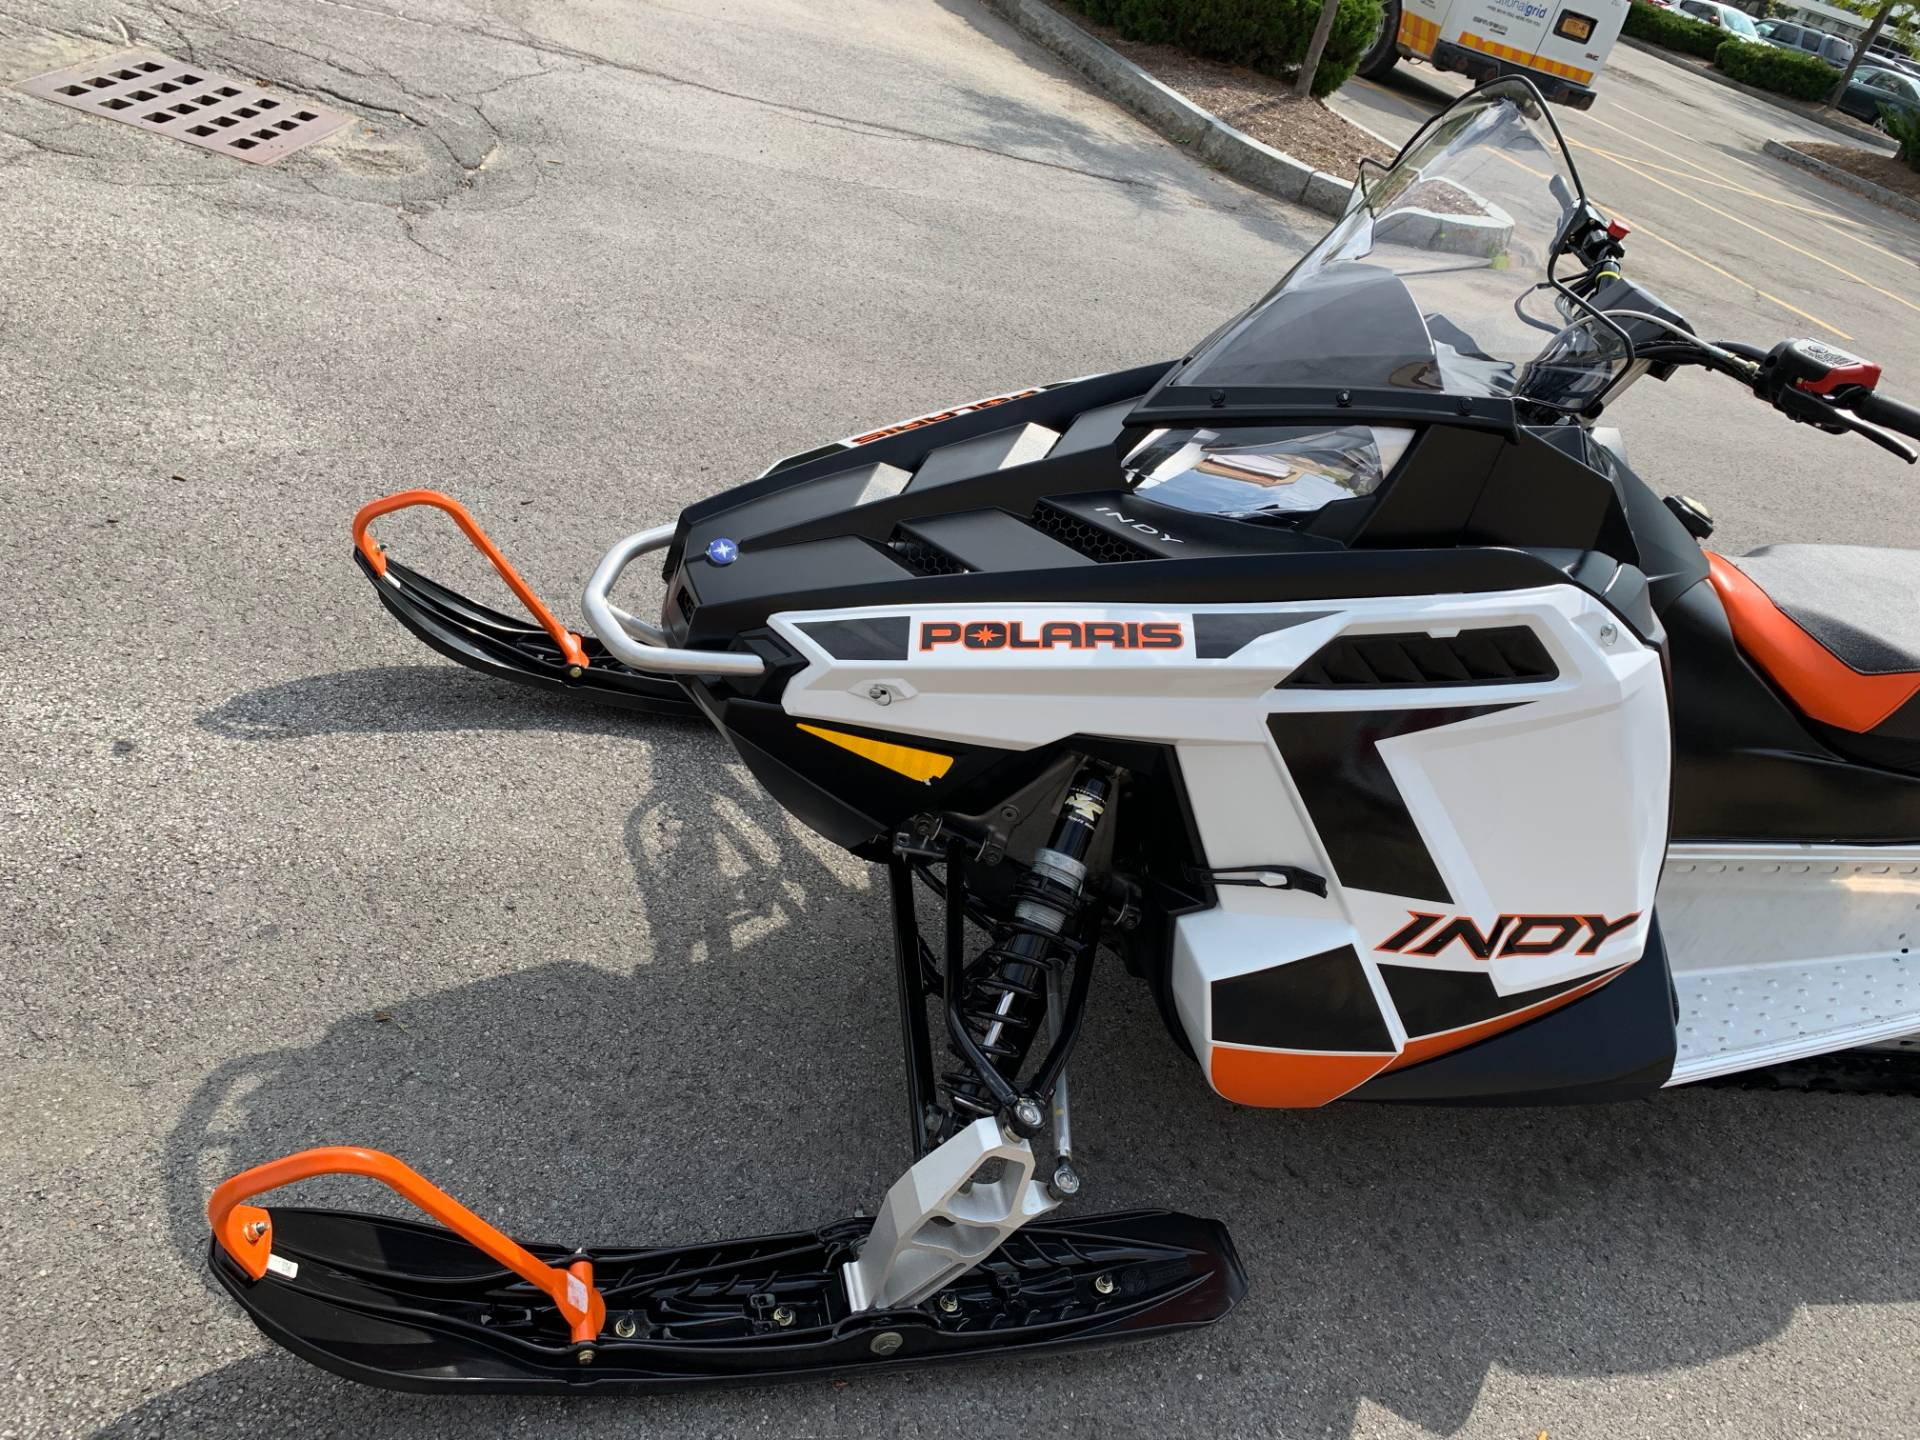 2019 Polaris 600 INDY 121 ES in Herkimer, New York - Photo 17